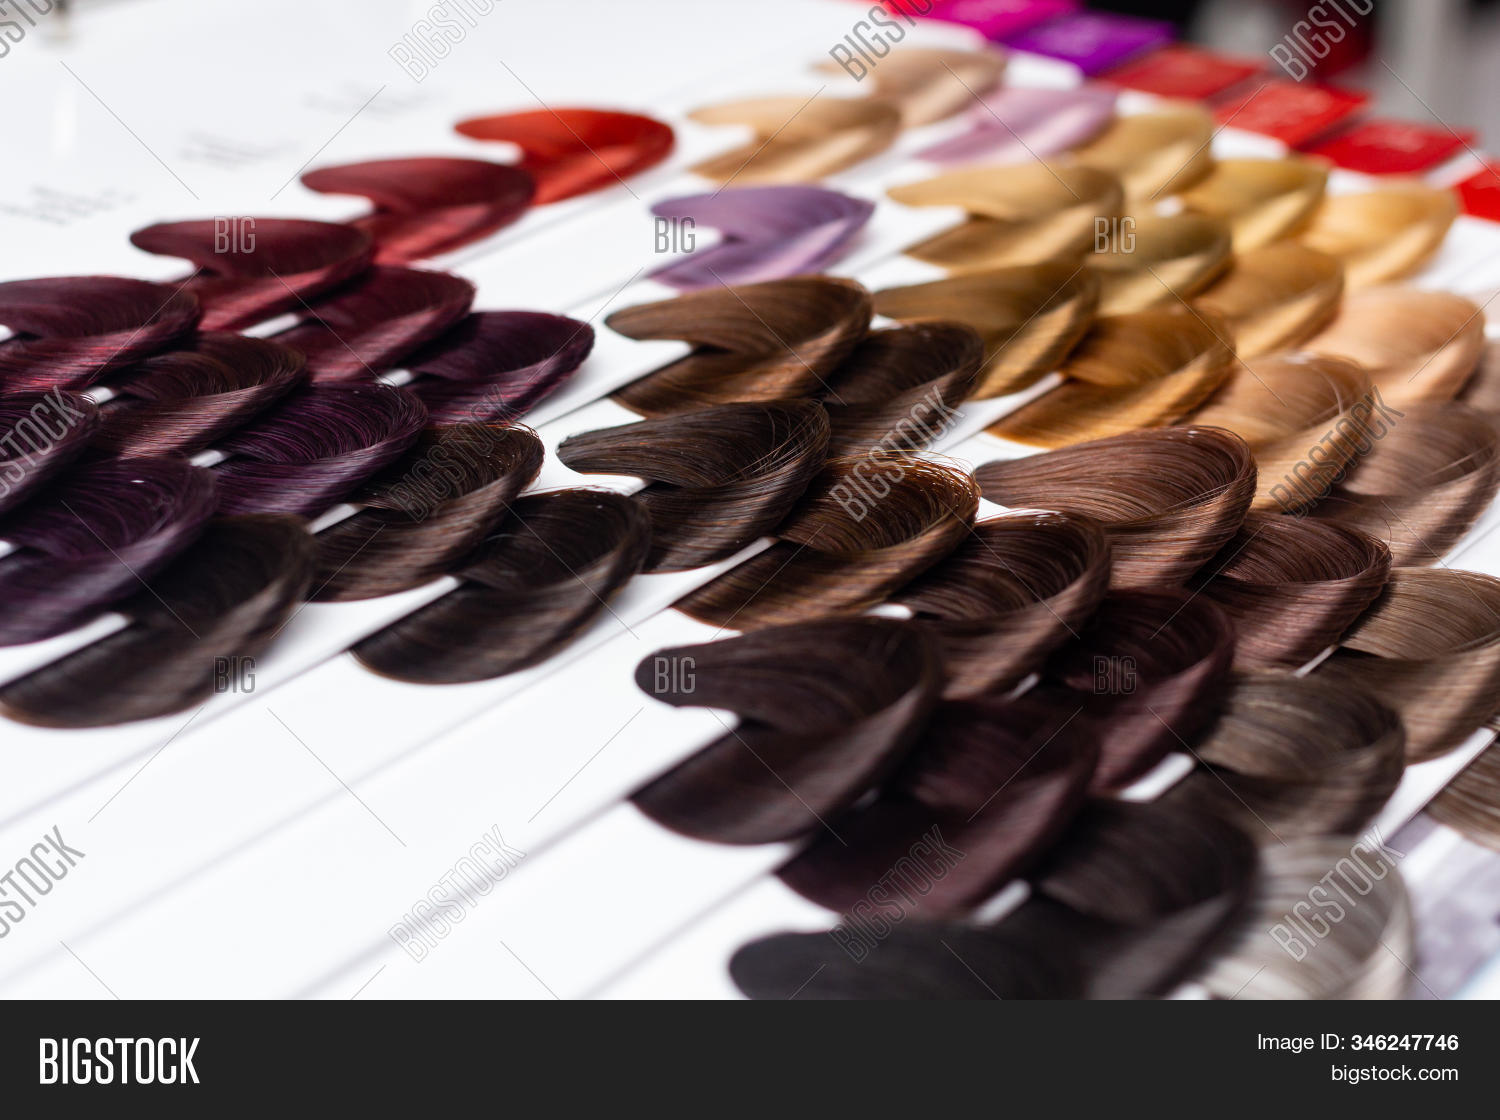 Palette Hair Colors Image Photo Free Trial Bigstock,Shopping Mall Barbra Streisand House